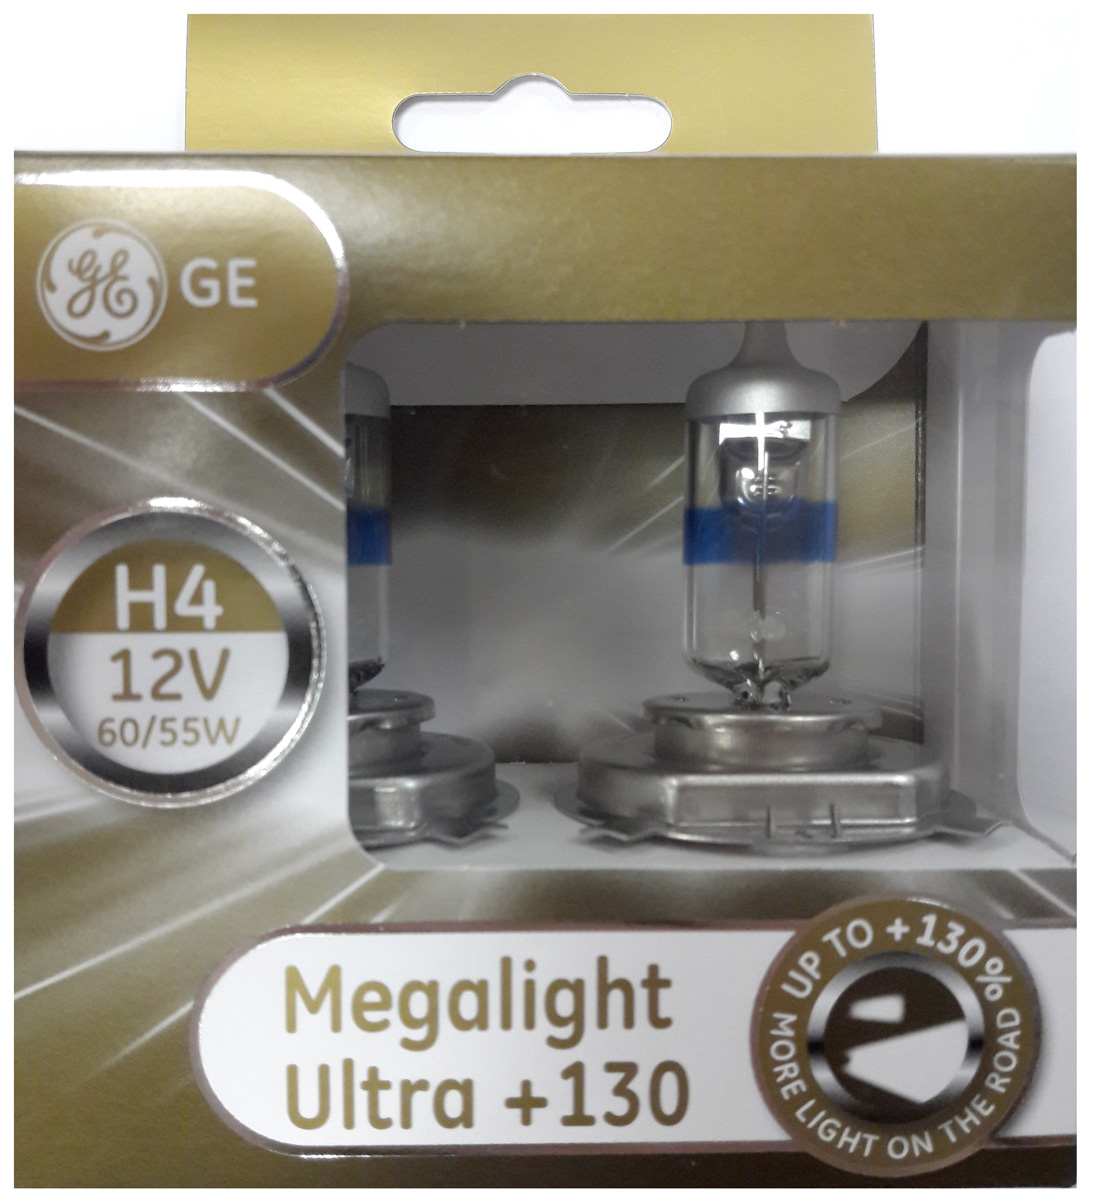 Лампа автомобильная General Electric Megalight Ultra 130, цоколь P43t, 12V, 60/55W, 2 шт 12v electric massage pad for car